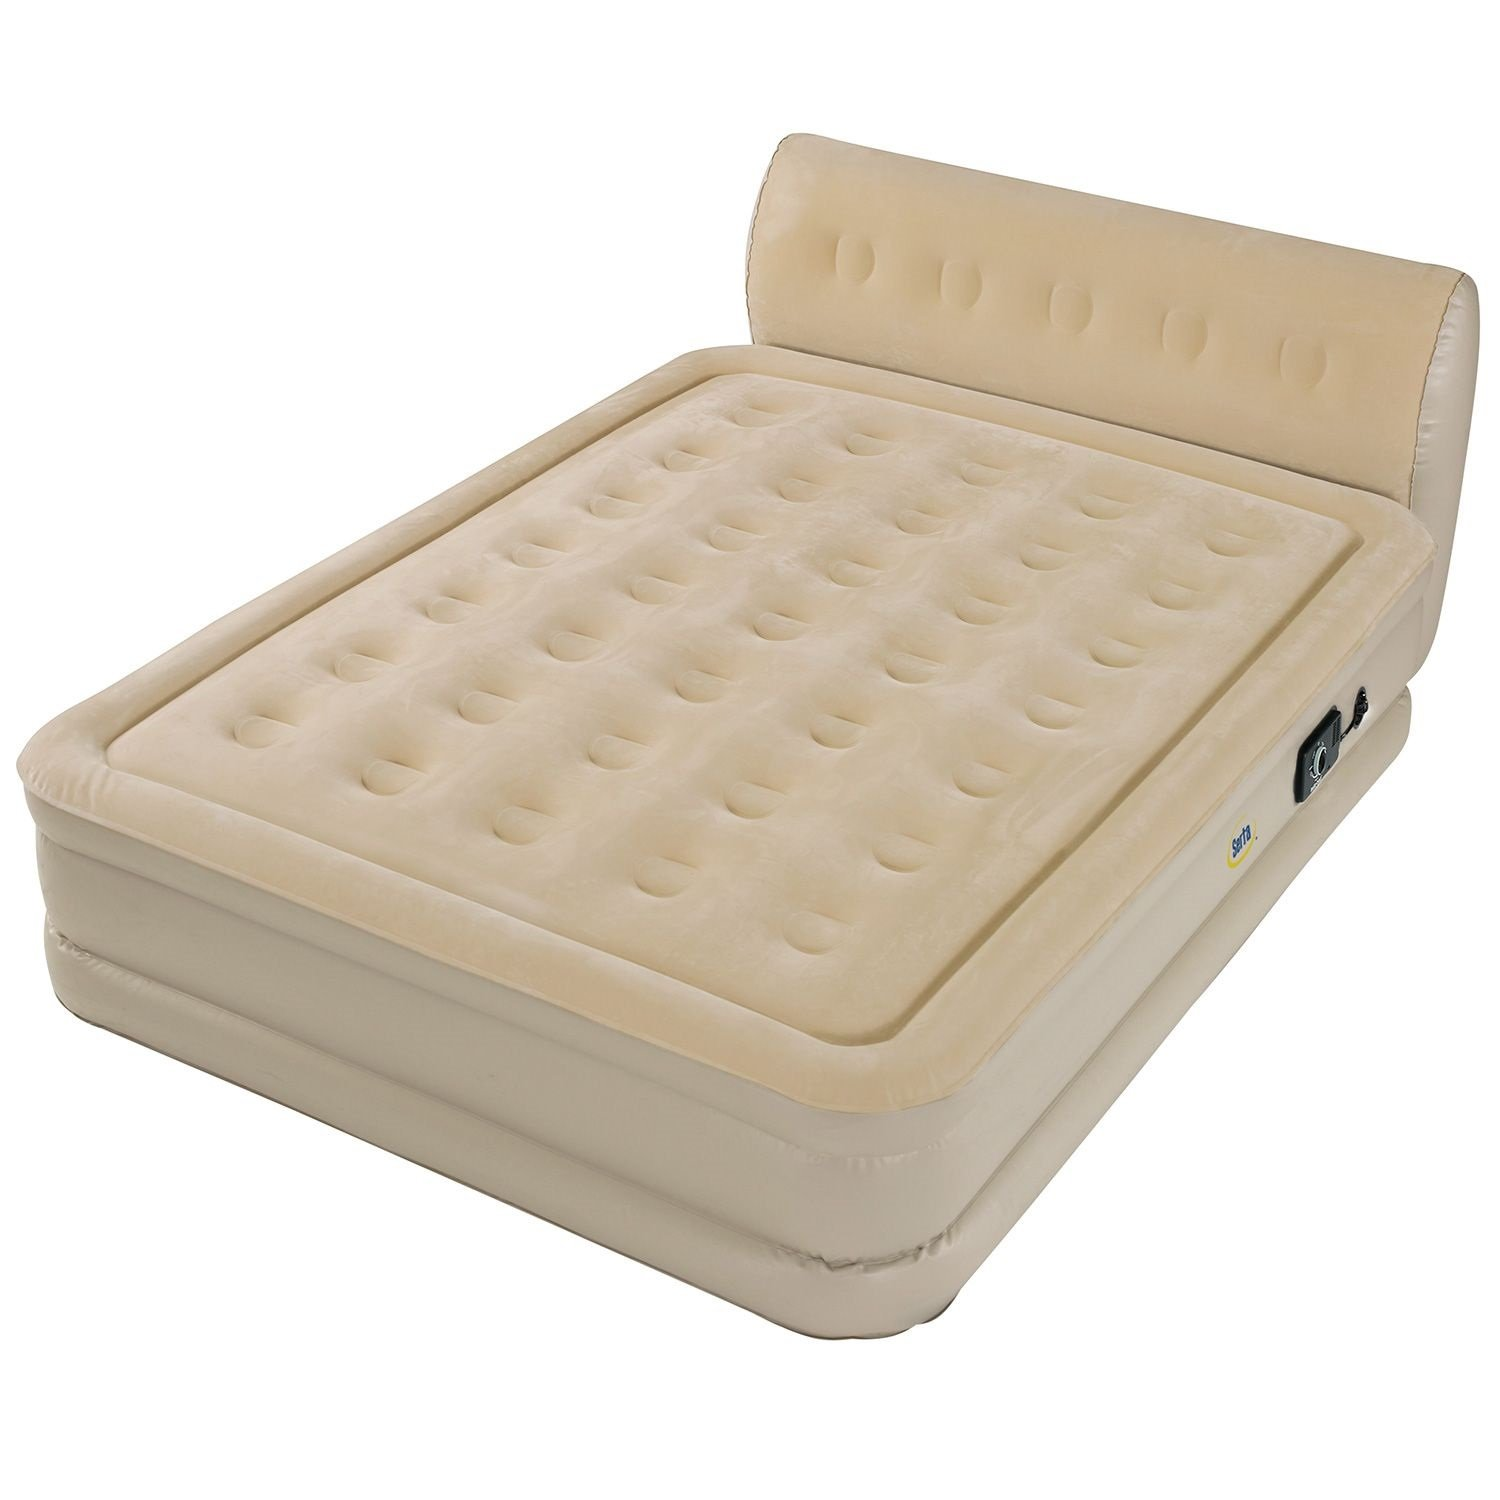 inflatable bed guide coleman buyer hack pad beds best a complete mattress air to sleep